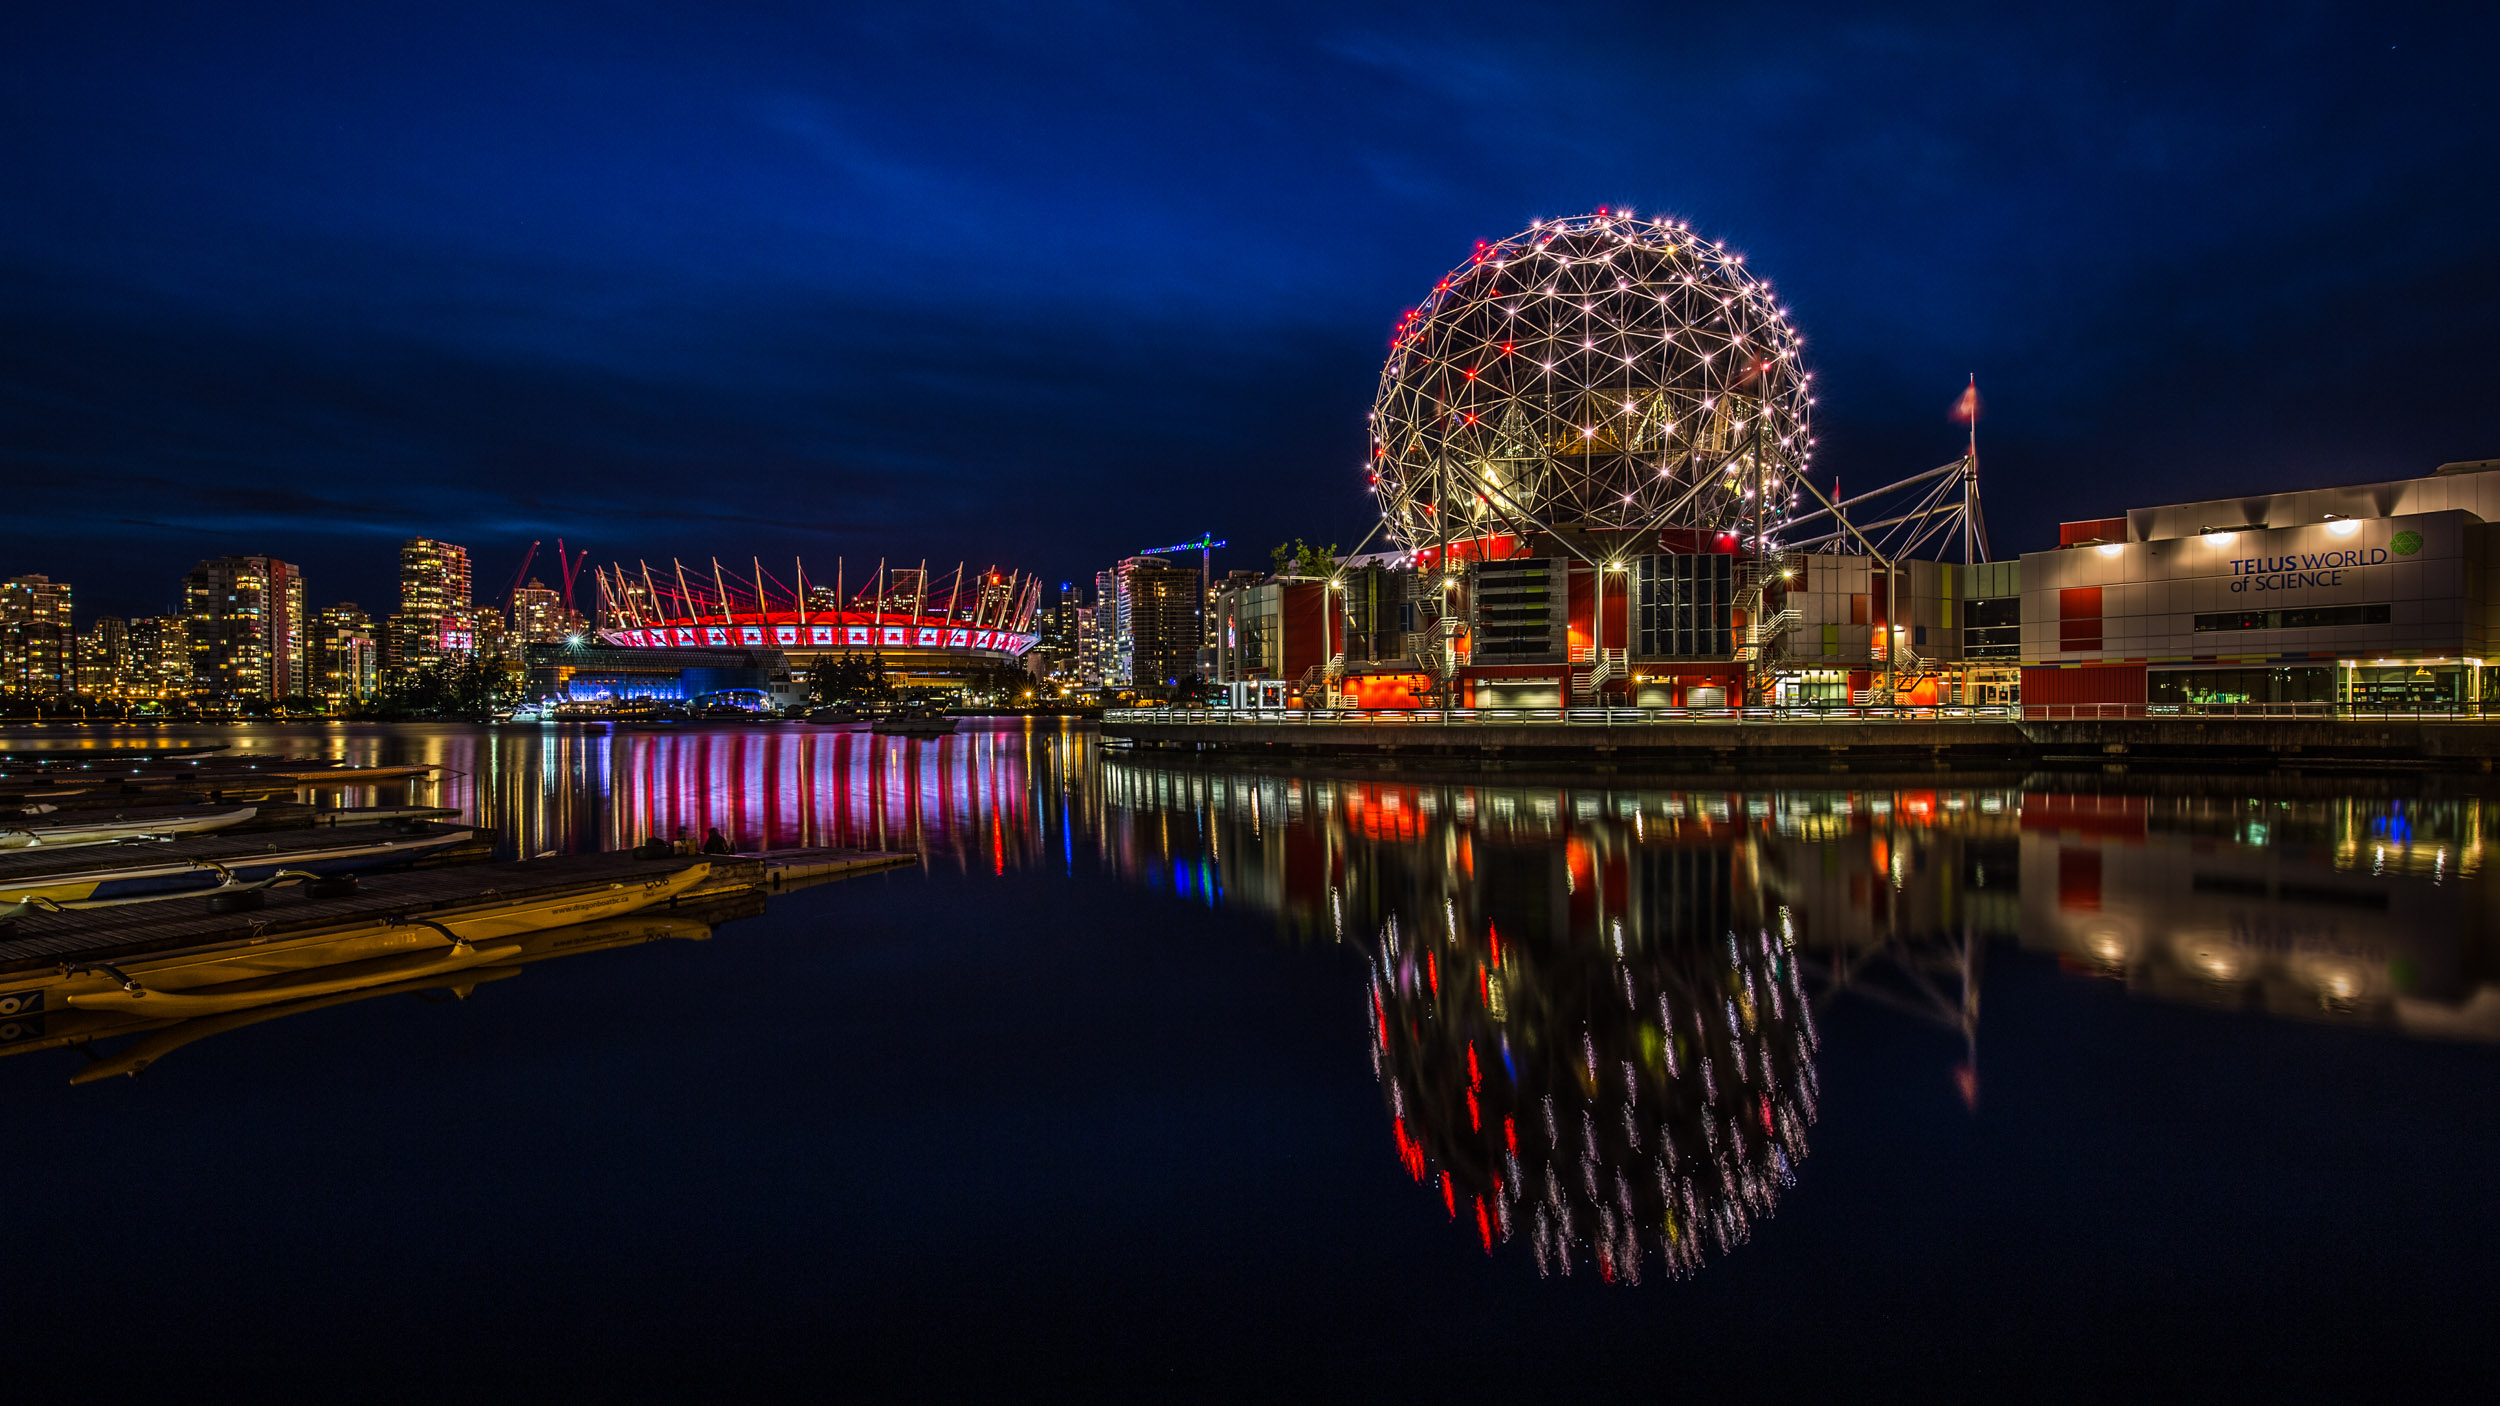 Light-Show at False Creek - Vancouver, Canada - City Photography